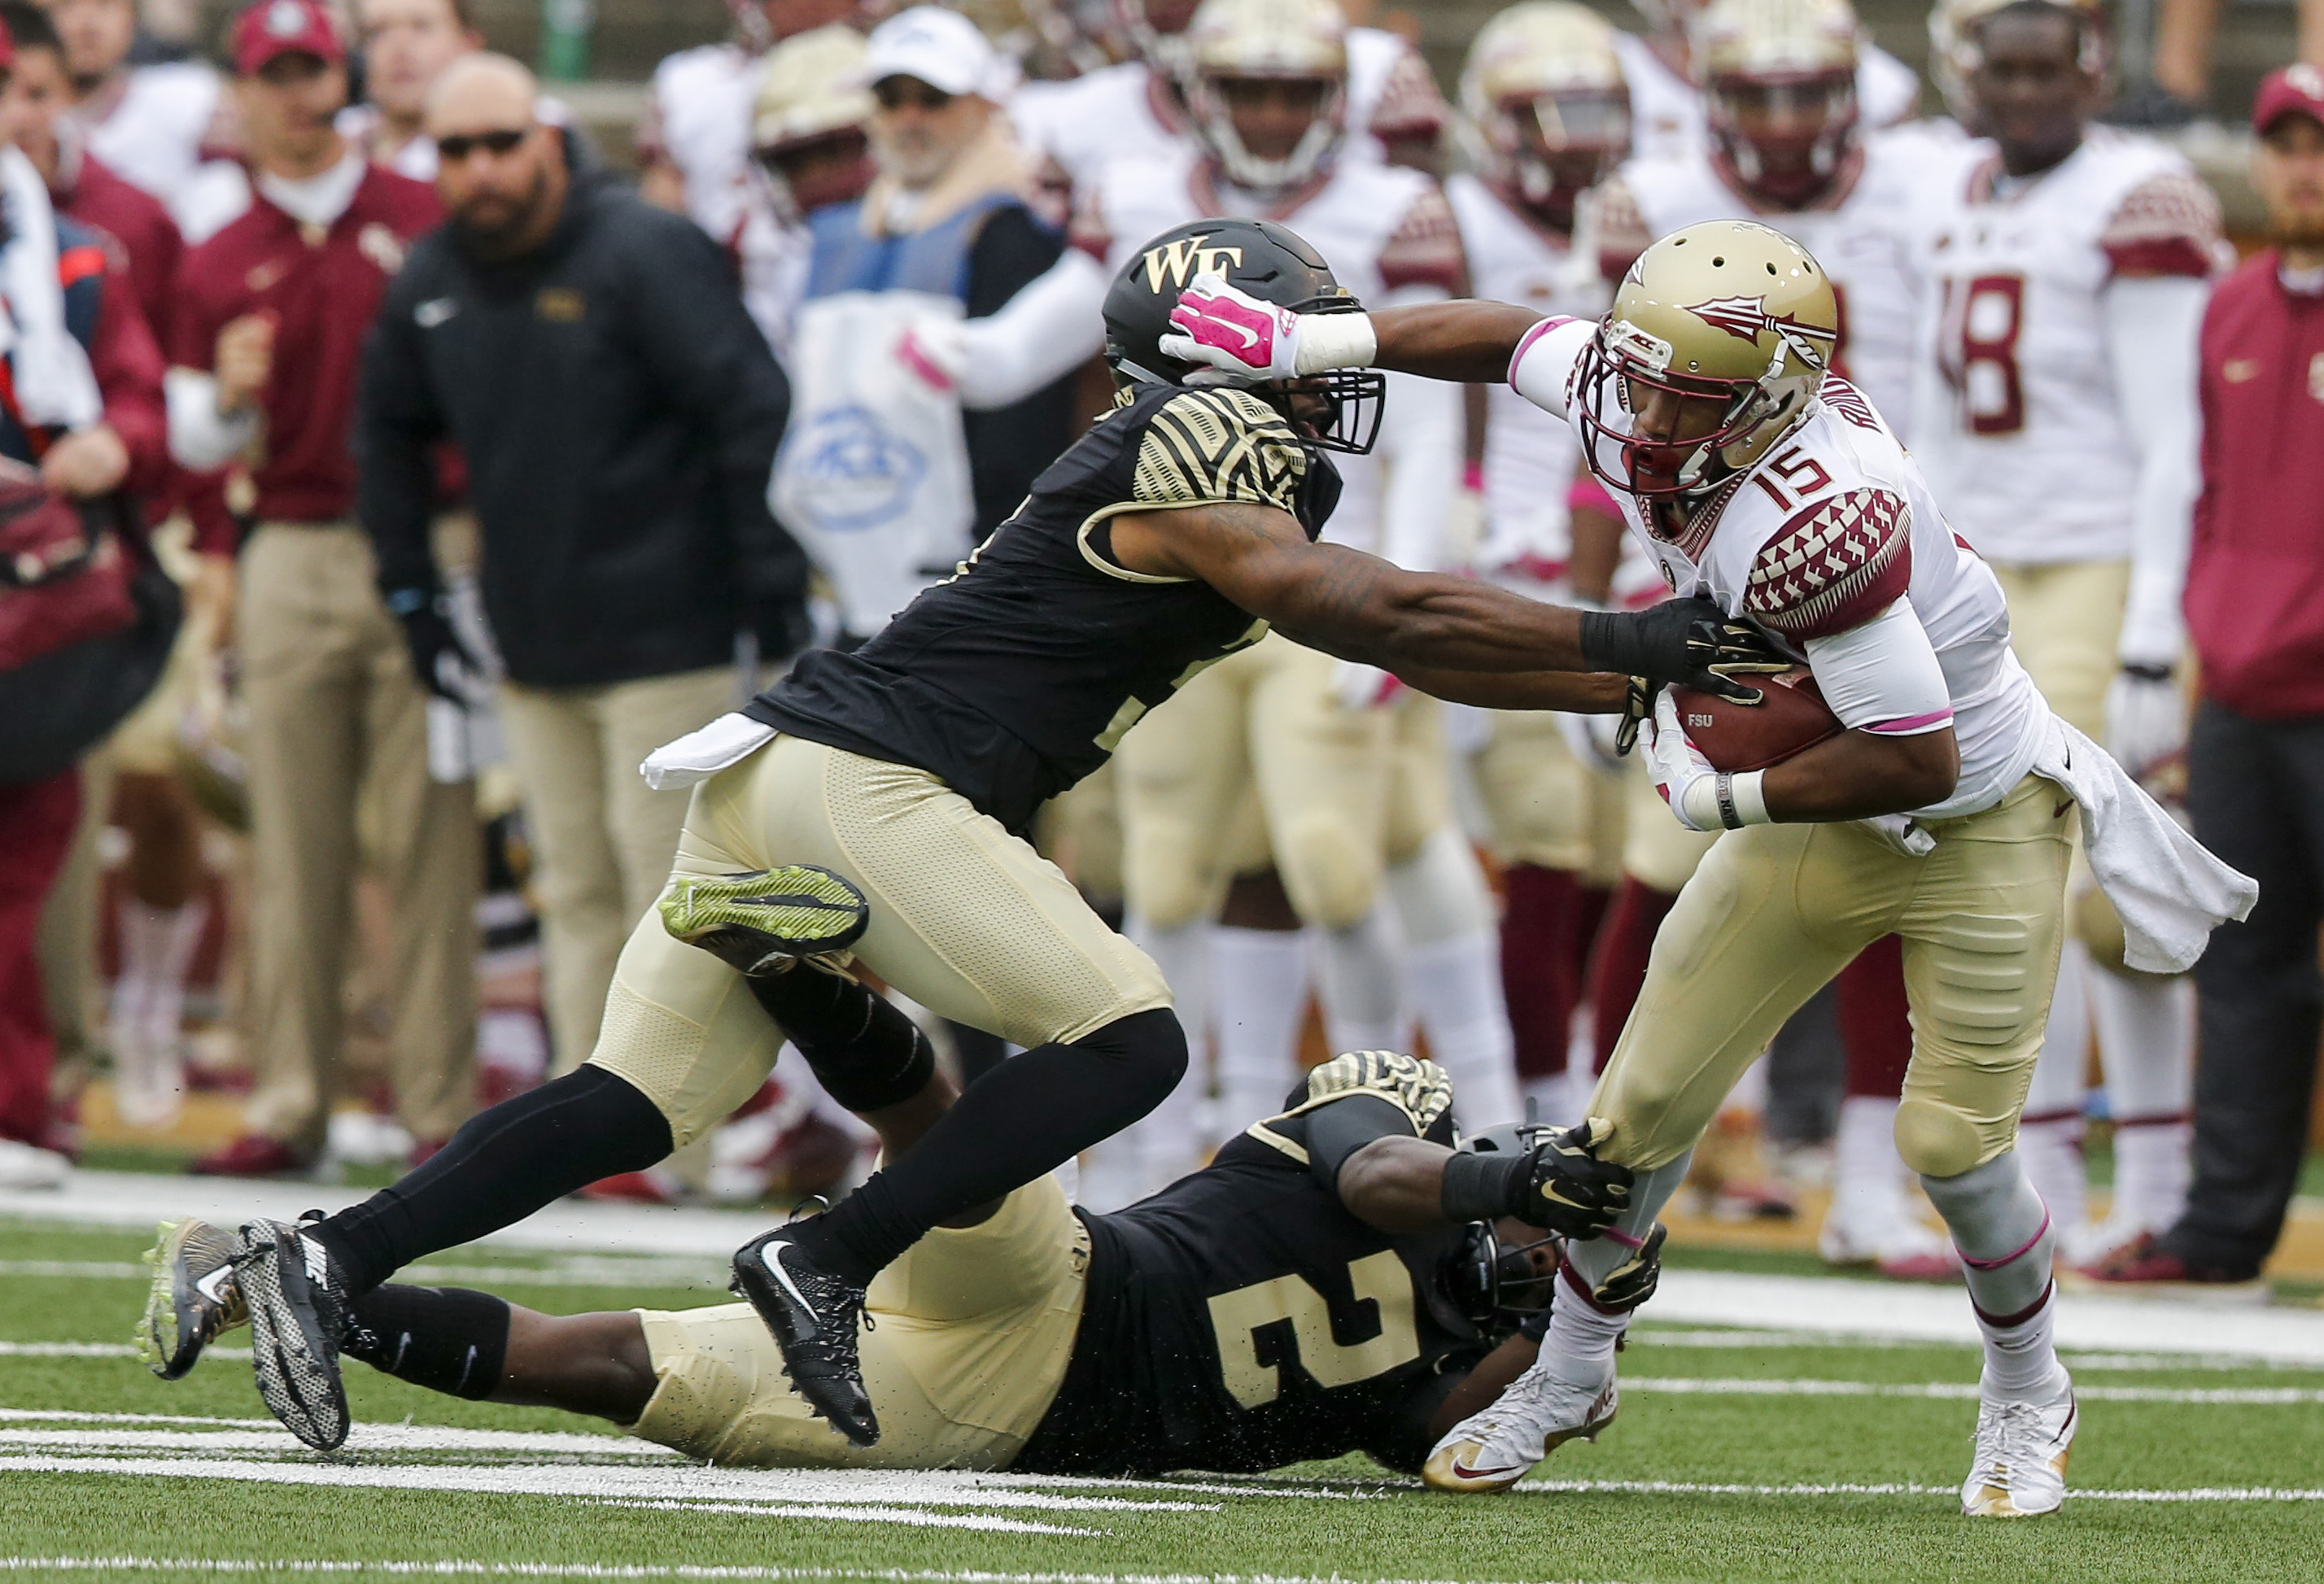 Florida State wide receiver Travis Rudolph (15) breaks free from Wake Forest defenders Cameron Glenn (2) and Devin Gaudin after a catch in the first half of an NCAA college football game in Winston-Salem, N.C., Saturday, Oct. 3, 2015. (AP Photo/Nell Redmo